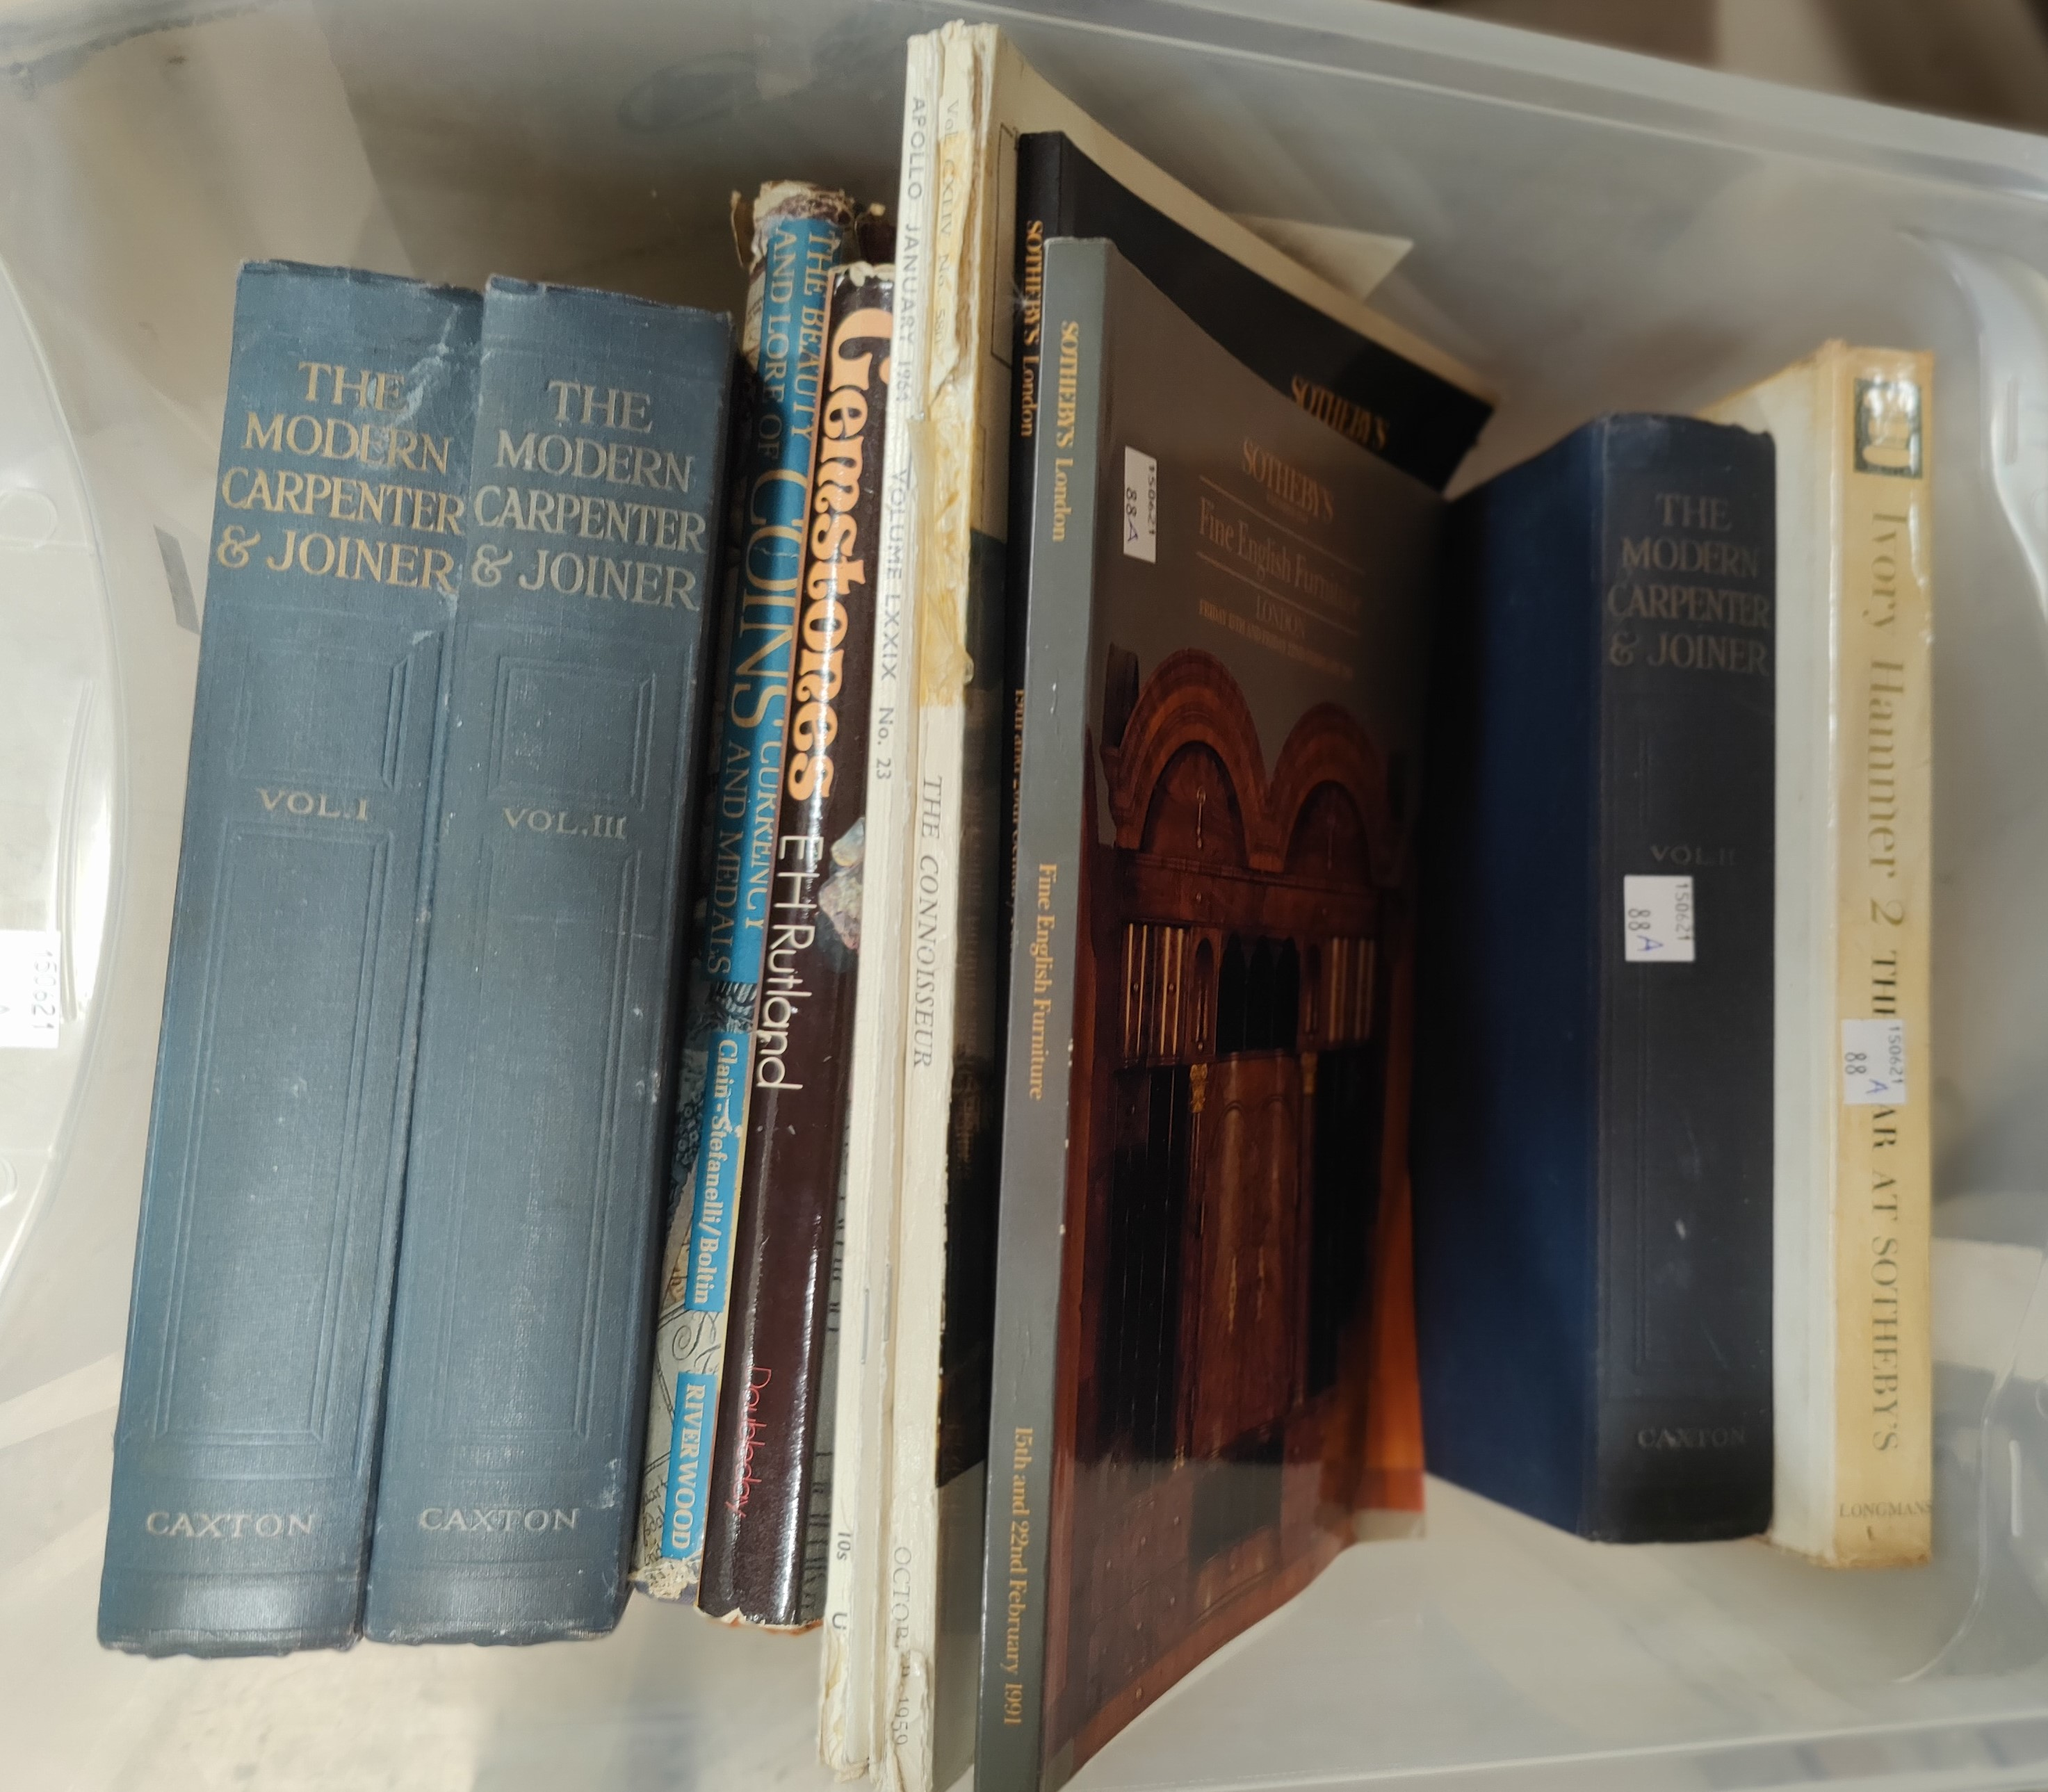 A collection of books on antiques and gem stones, The Modern Carpenter and Joiner etc